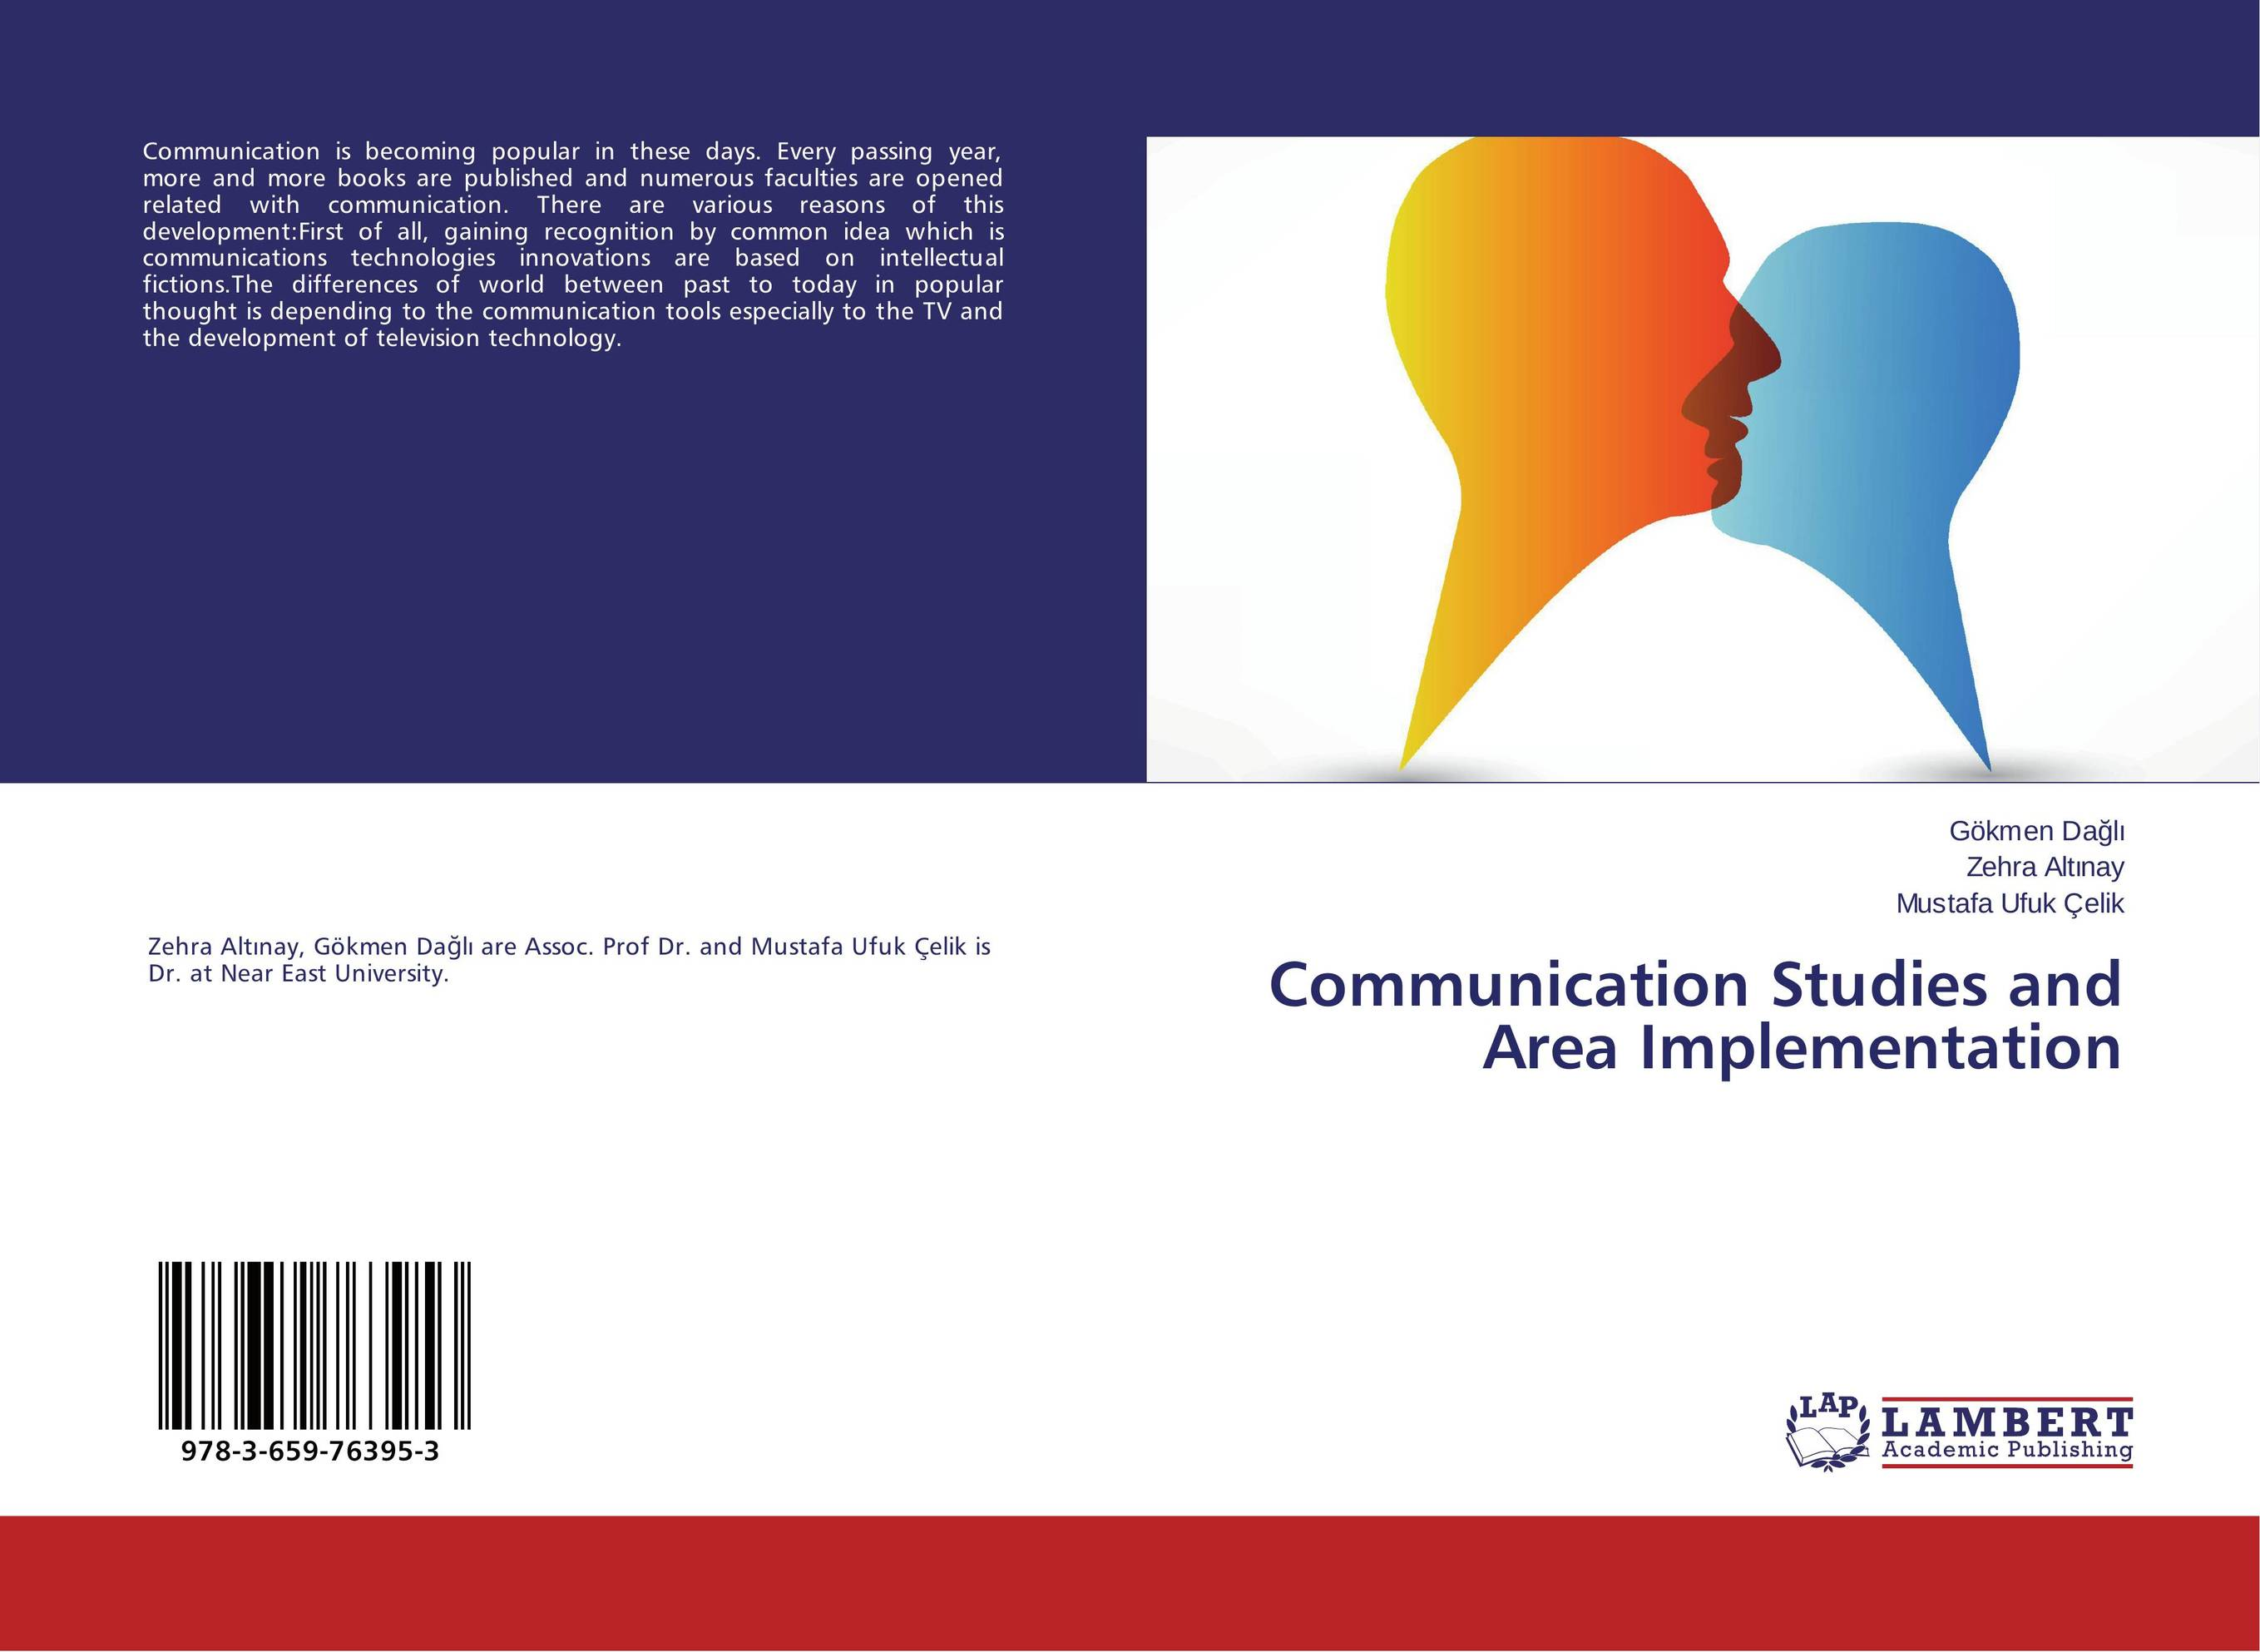 Communication Studies and Area Implementation these days are ours